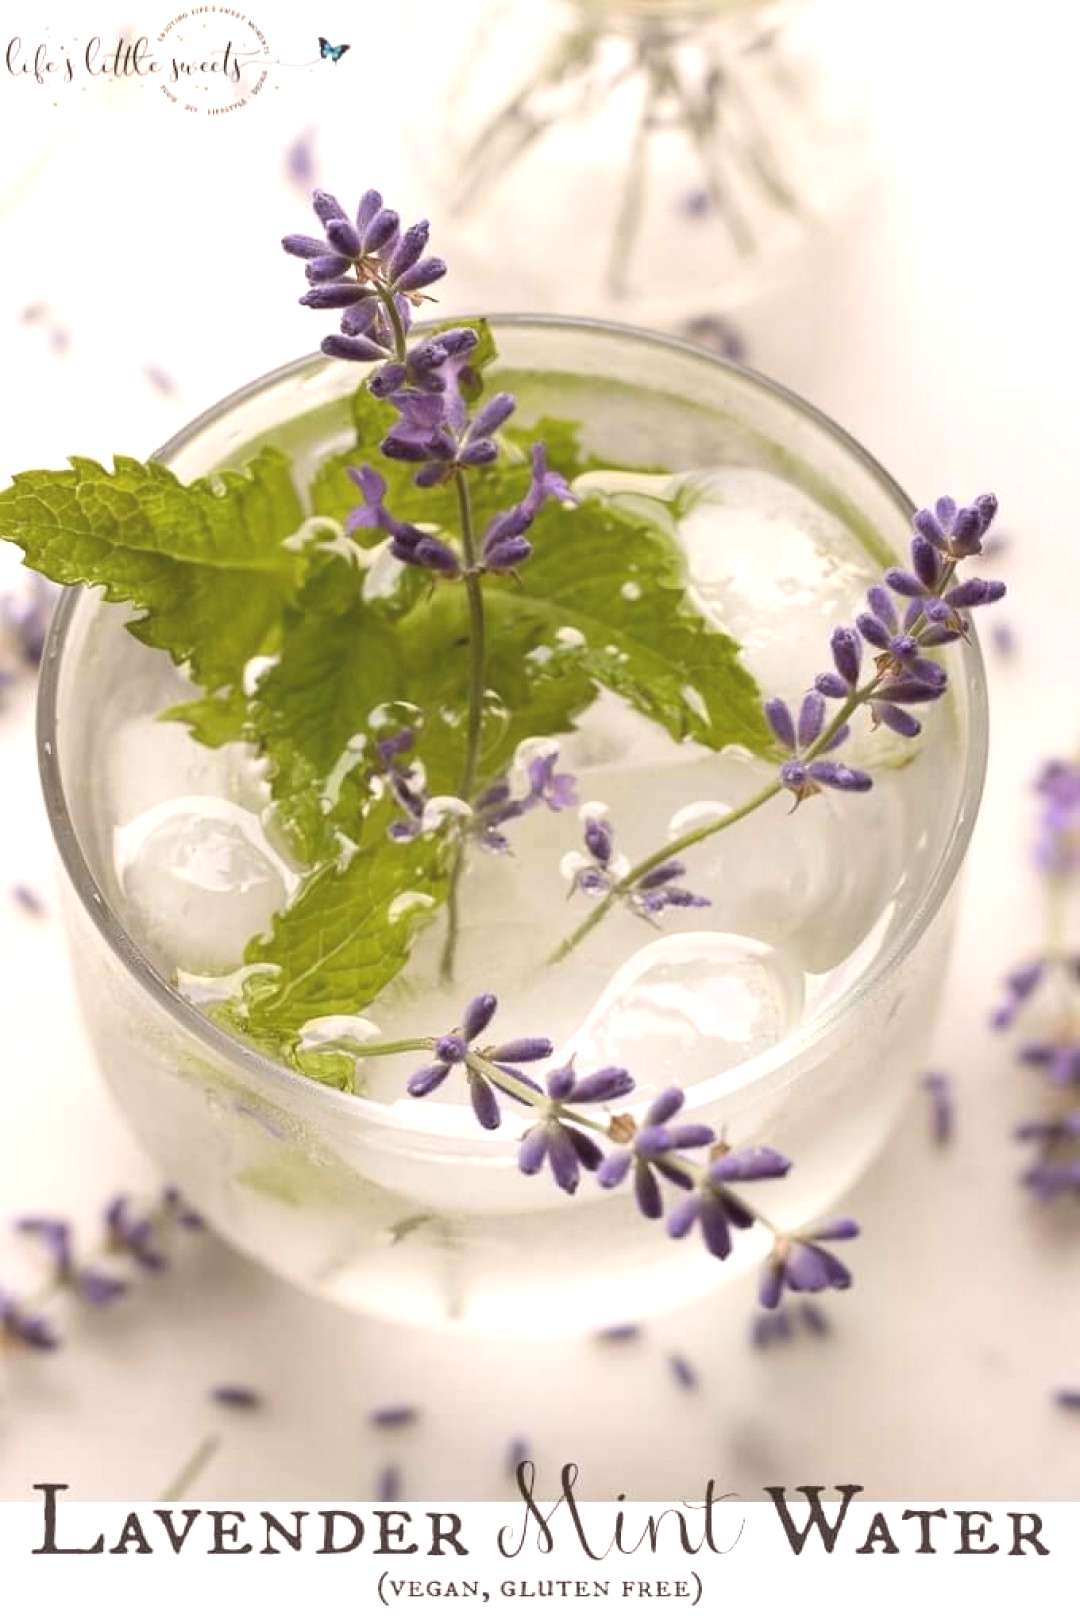 Lavender Mint Wateris a Summer, spa water recipe that you can make passively by cold brewing in t